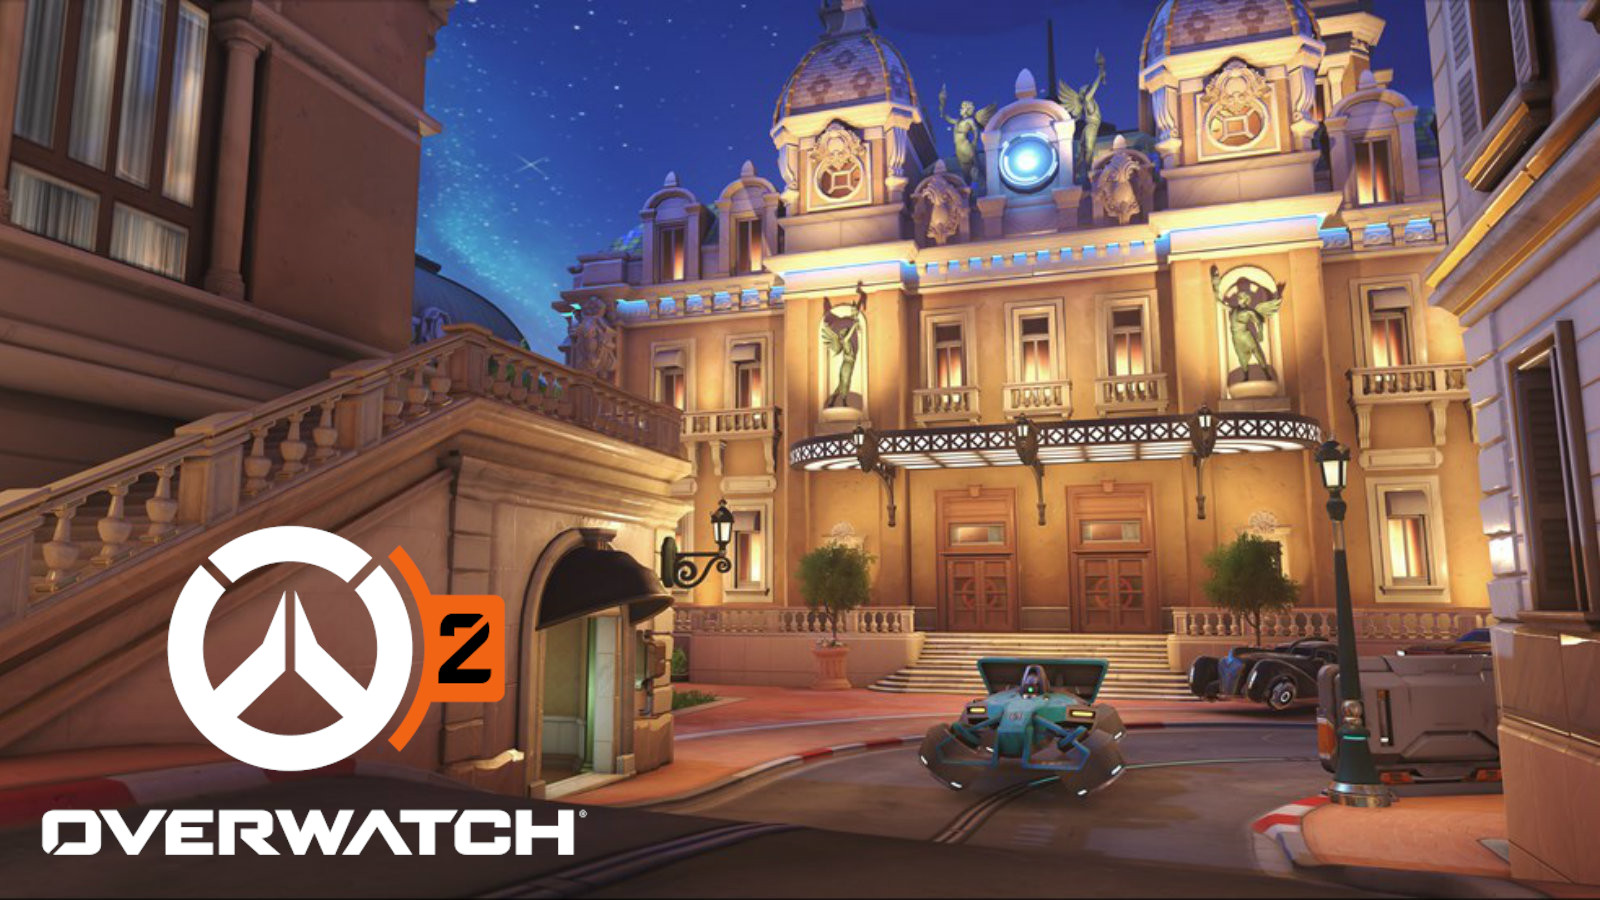 Monte Carlo Overwatch 2 map